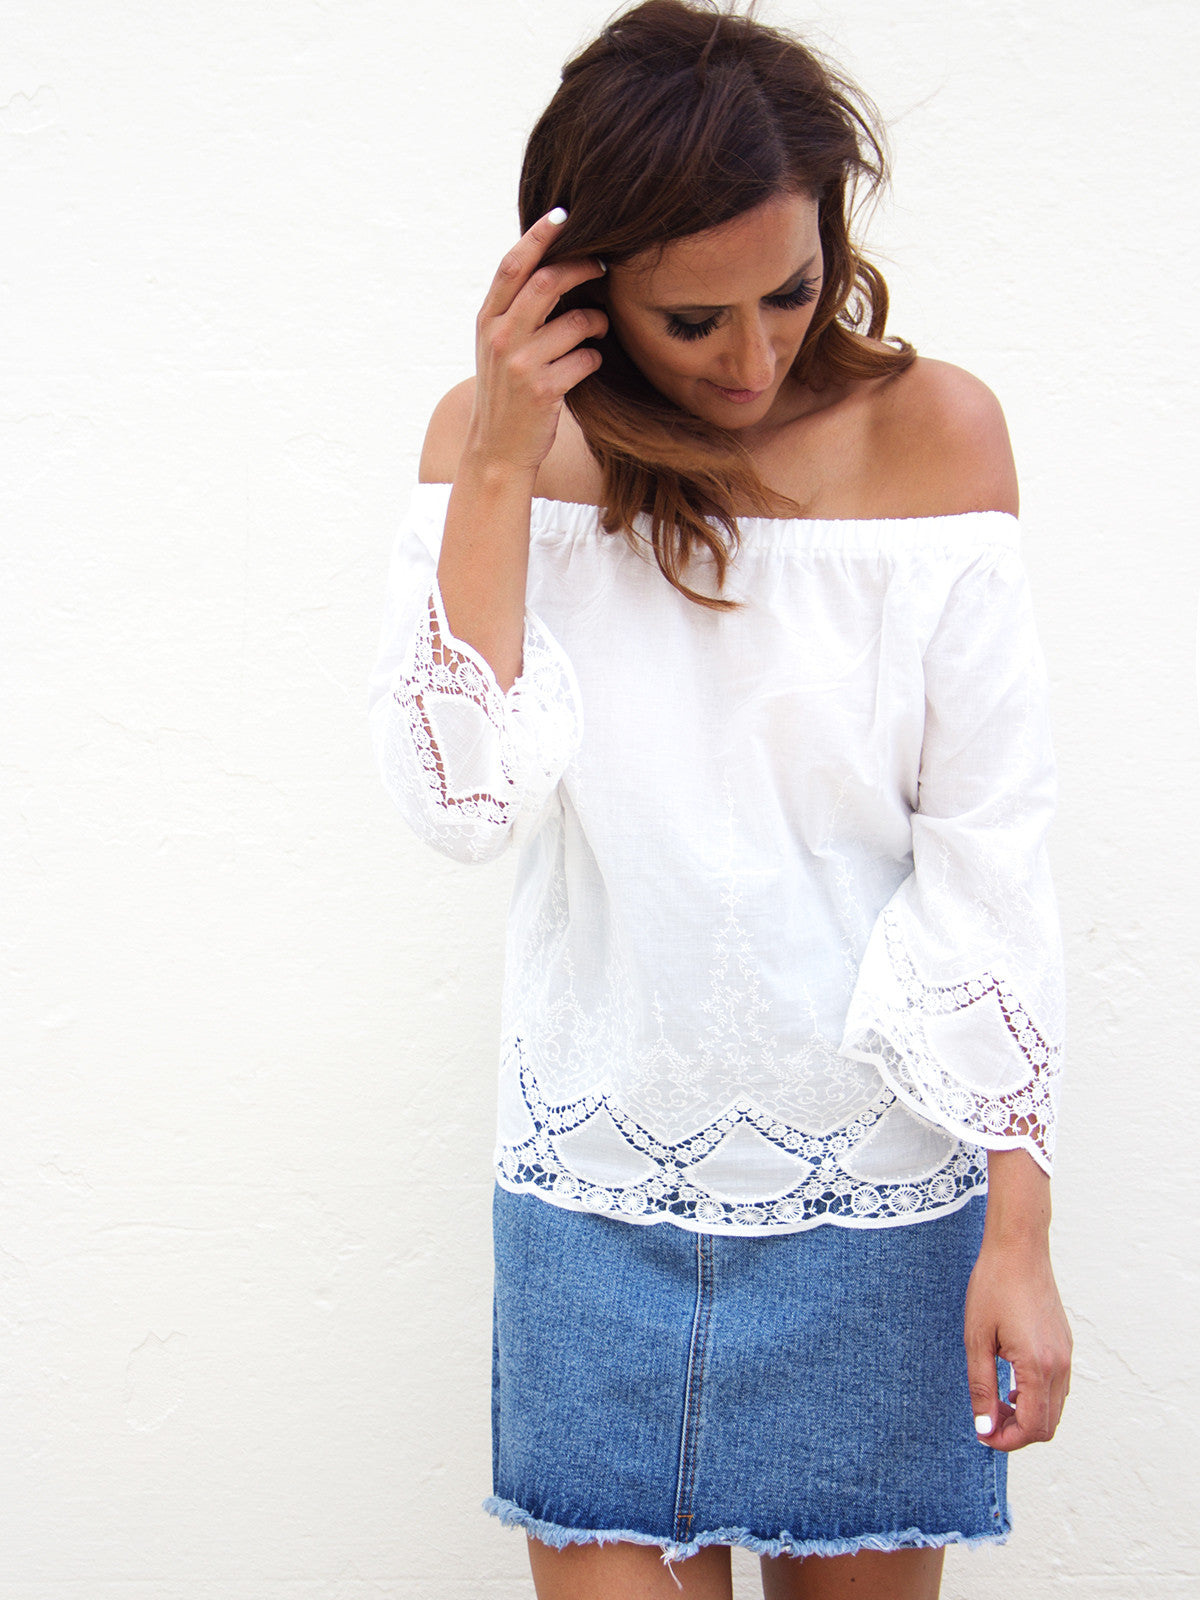 SEE THE SUN OFF THE SHOULDER TOP